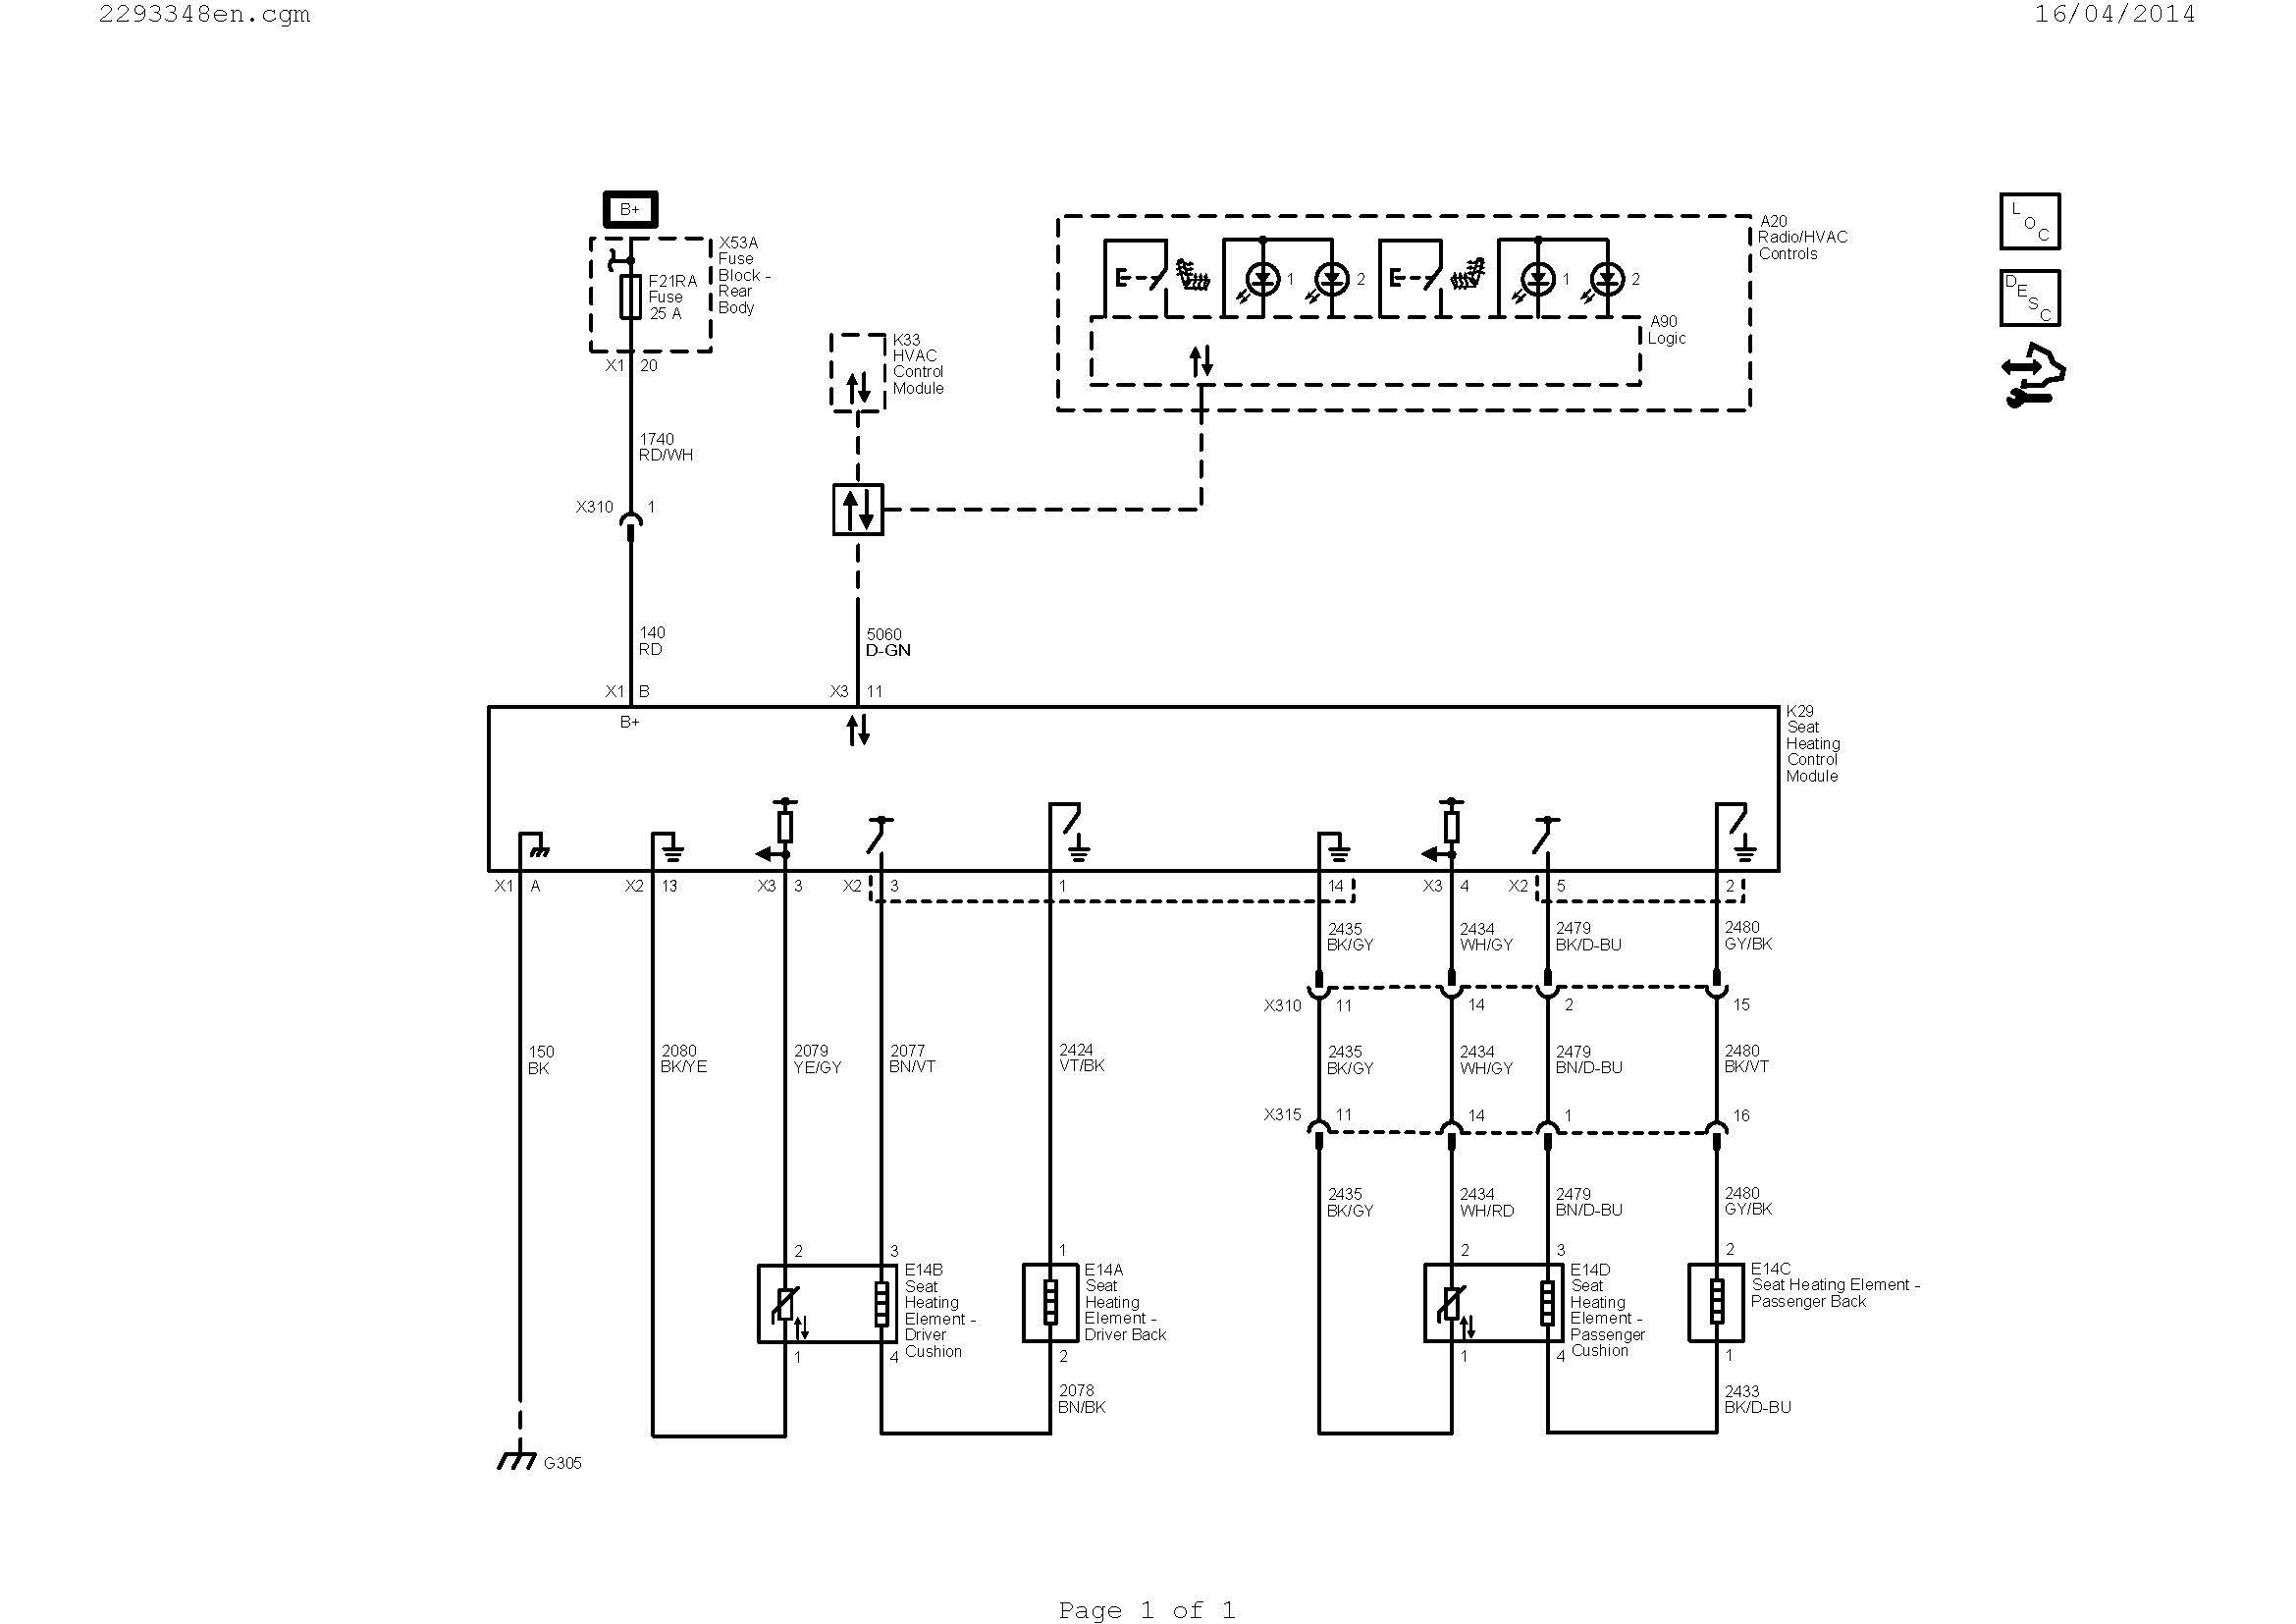 Electrical Wiring Diagrams New Phone Wiring Diagram New Best Wiring